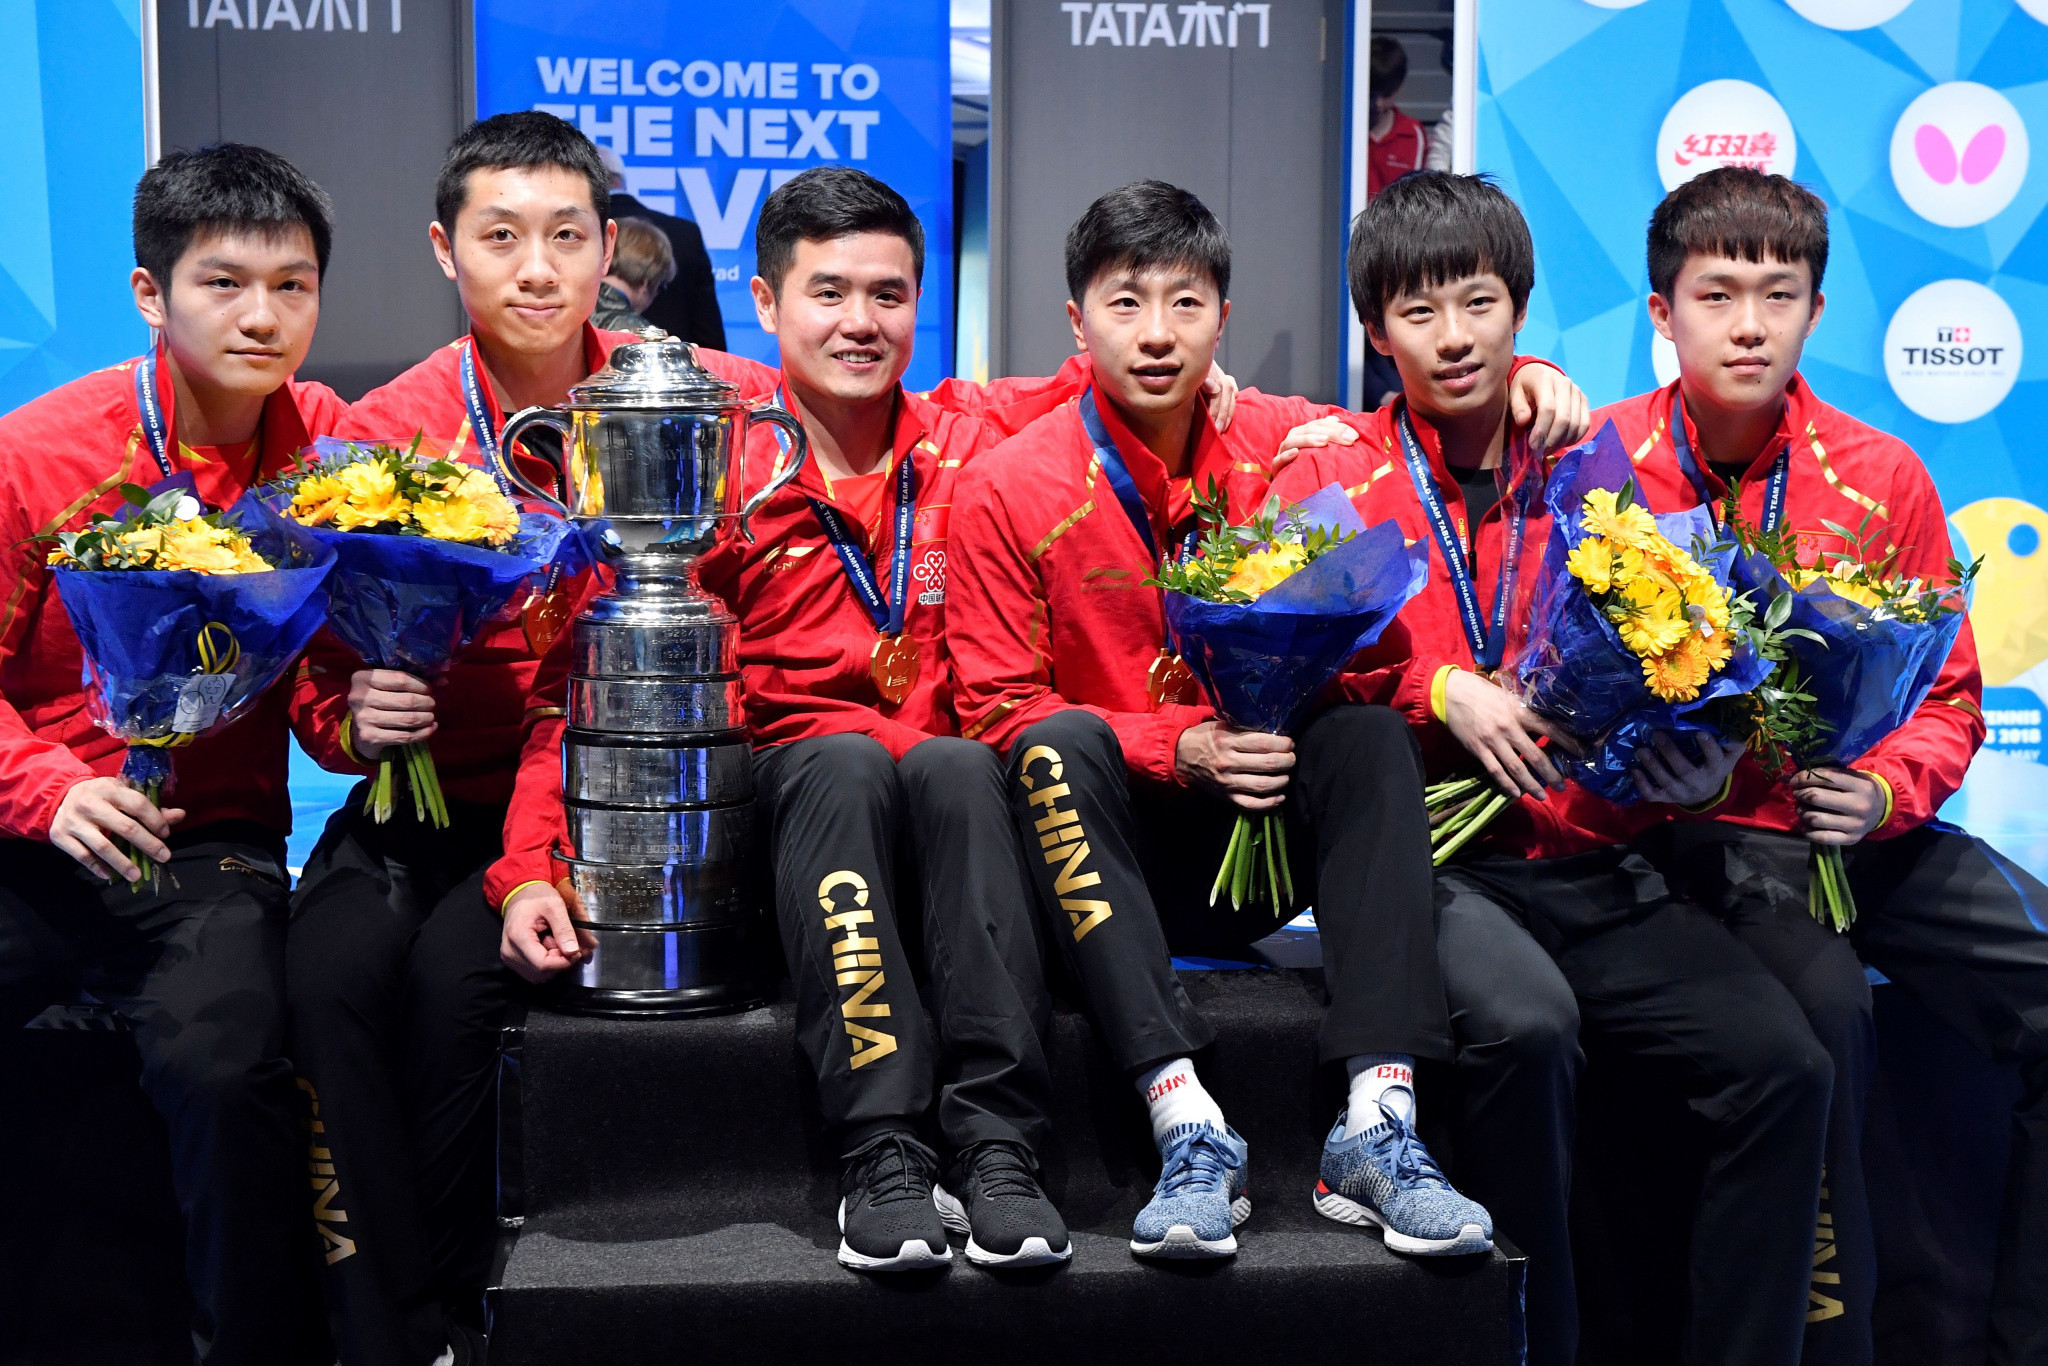 The World Team Table Tennis Championships in Busan, due to have taken place next month, have been postponed due to the outbreak of coronavirus in South Korea ©Getty Images